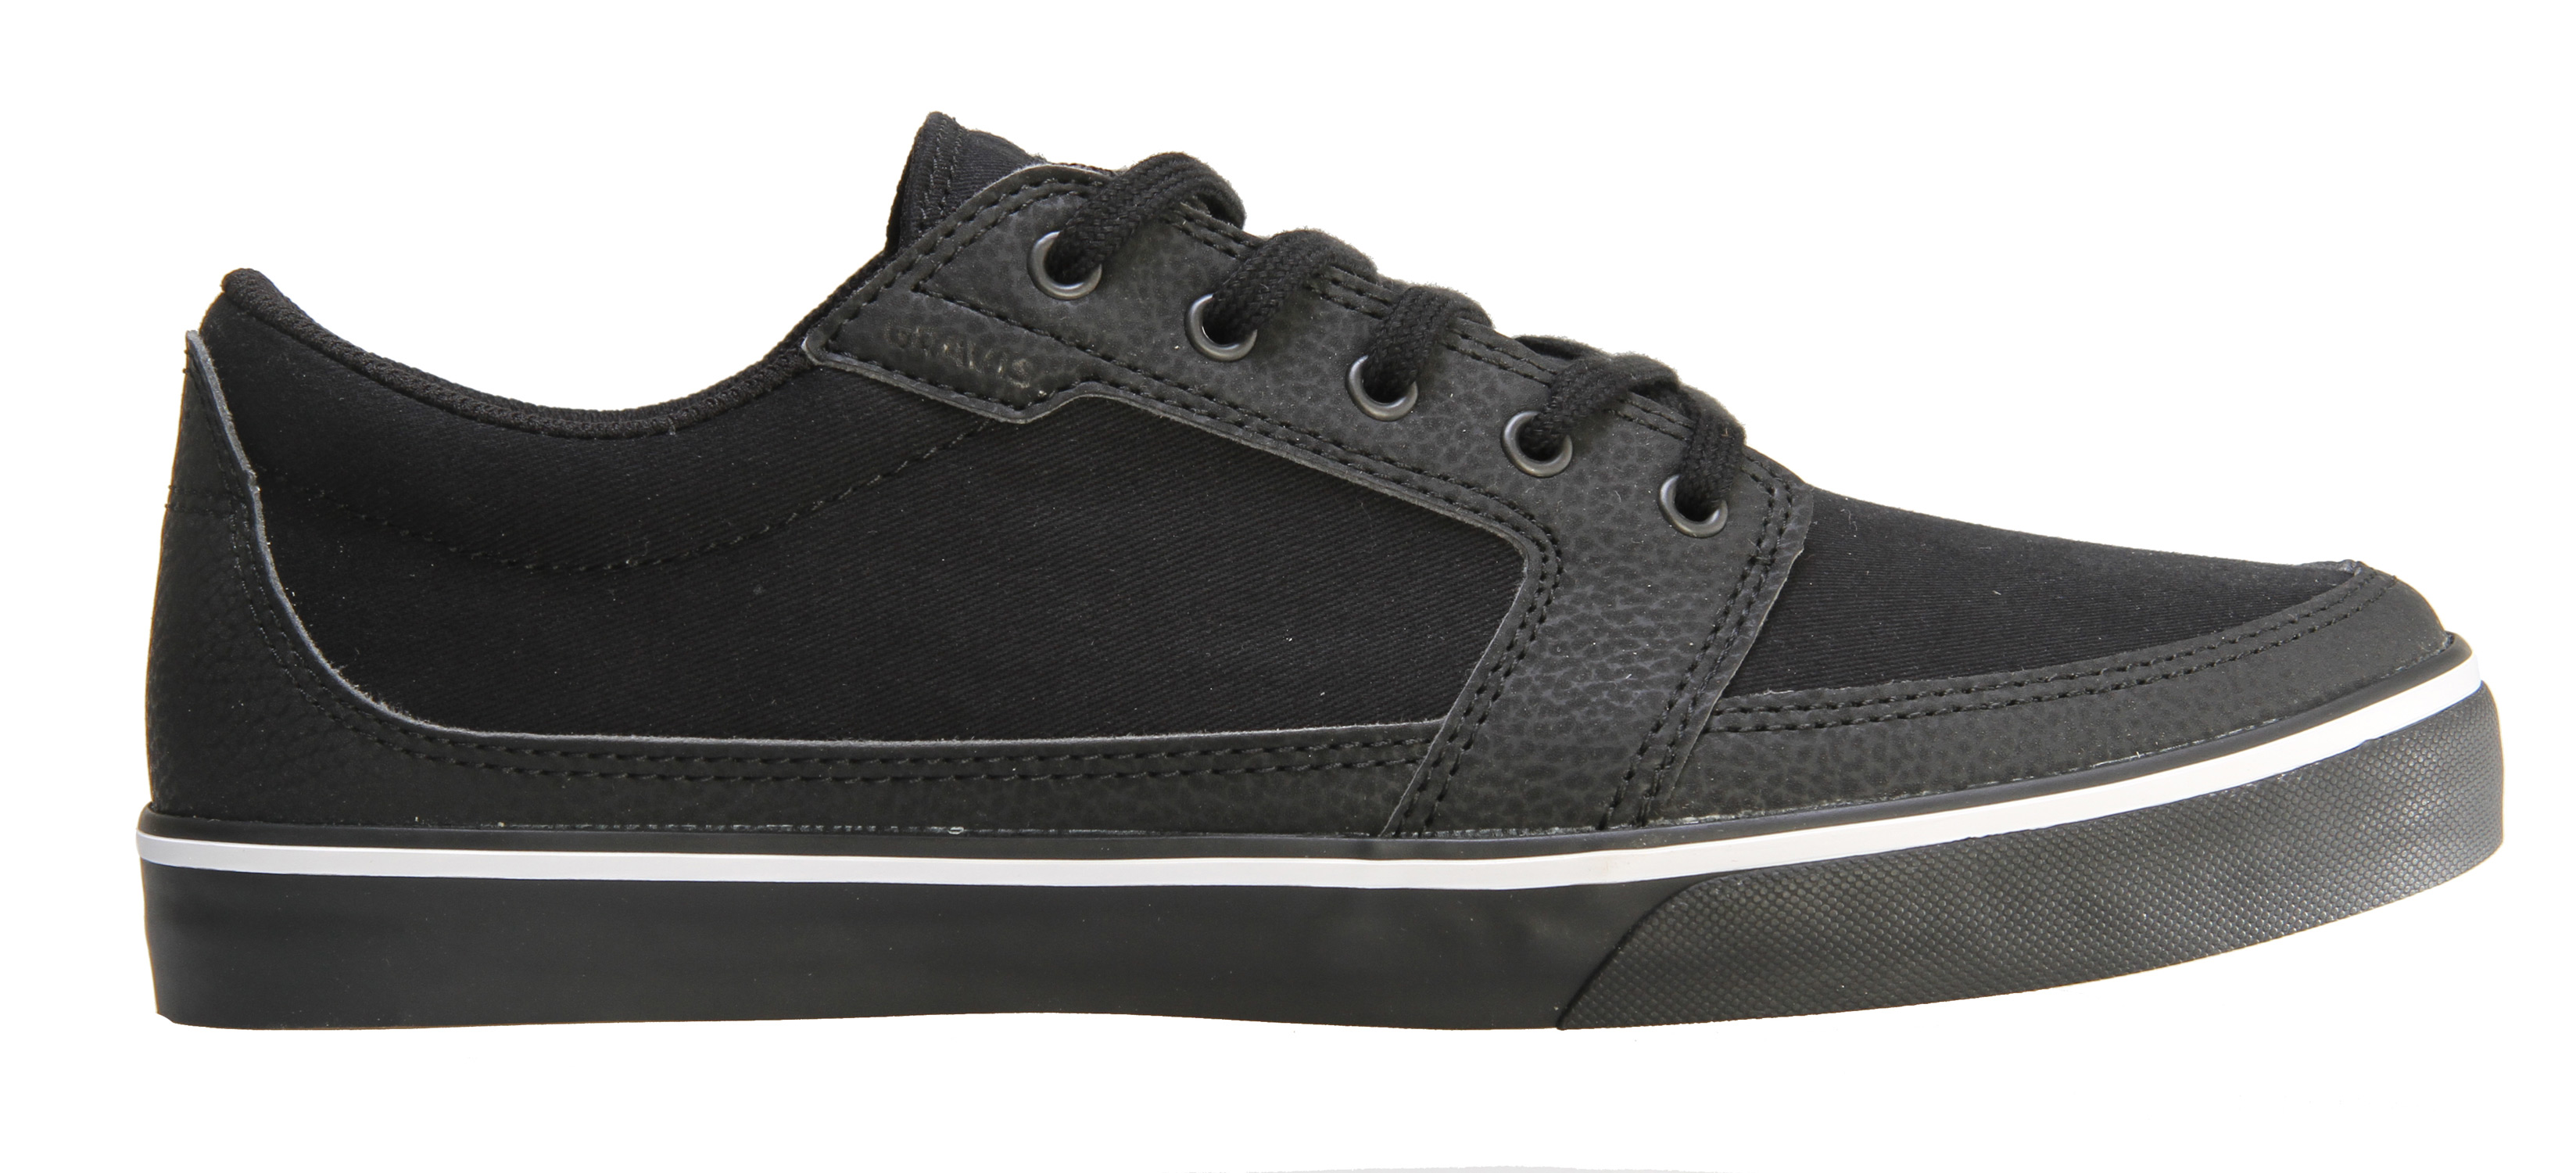 Skateboard Gravis Lowdown Skate Shoes - $48.95